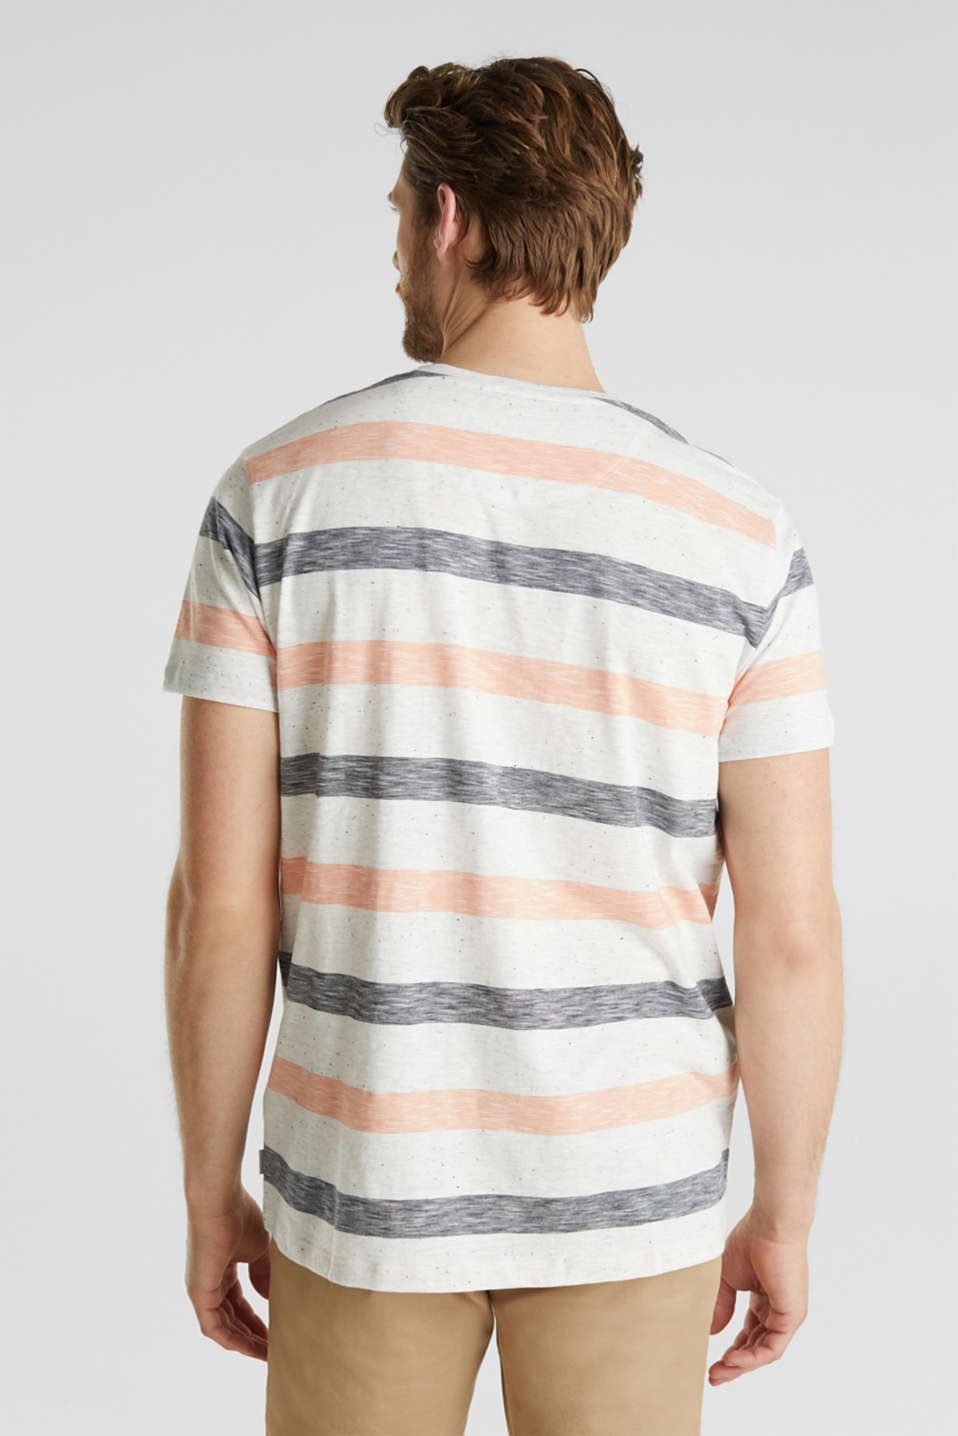 Jersey top with dimples and stripes, ORANGE 3, detail image number 3